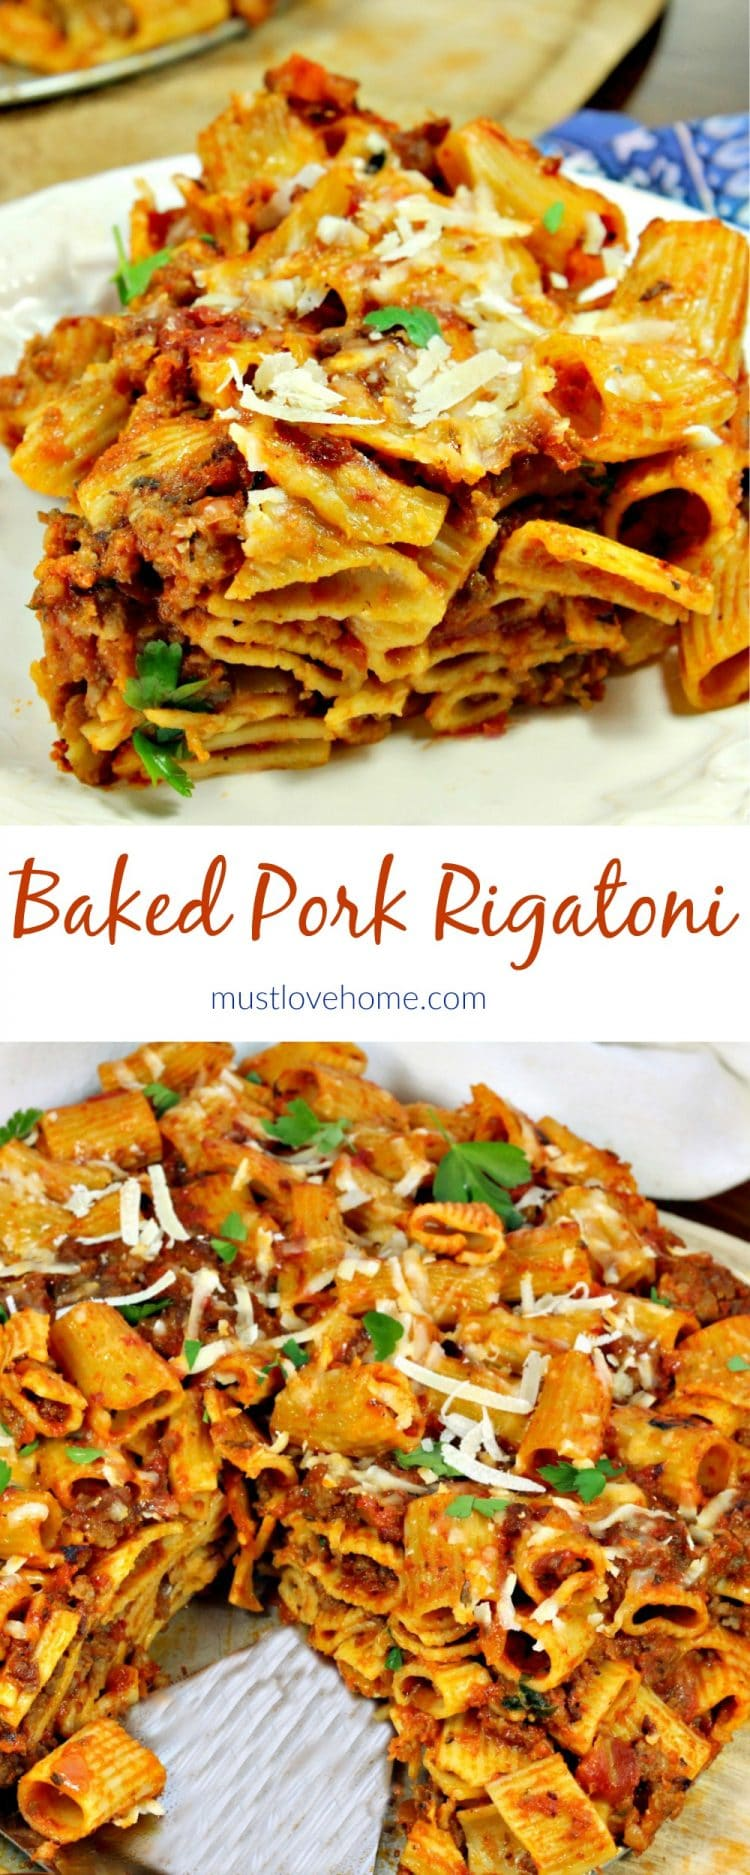 Pork Rigatoni Bake - a simple weeknight meal that is ready in minutes, but looks sophisticated. Ground italian sausage is mixed with sauce, tossed with rigatoni noodles and parmesan cheese, then baked with more parmesan on top. This one is sure to please the entire family!